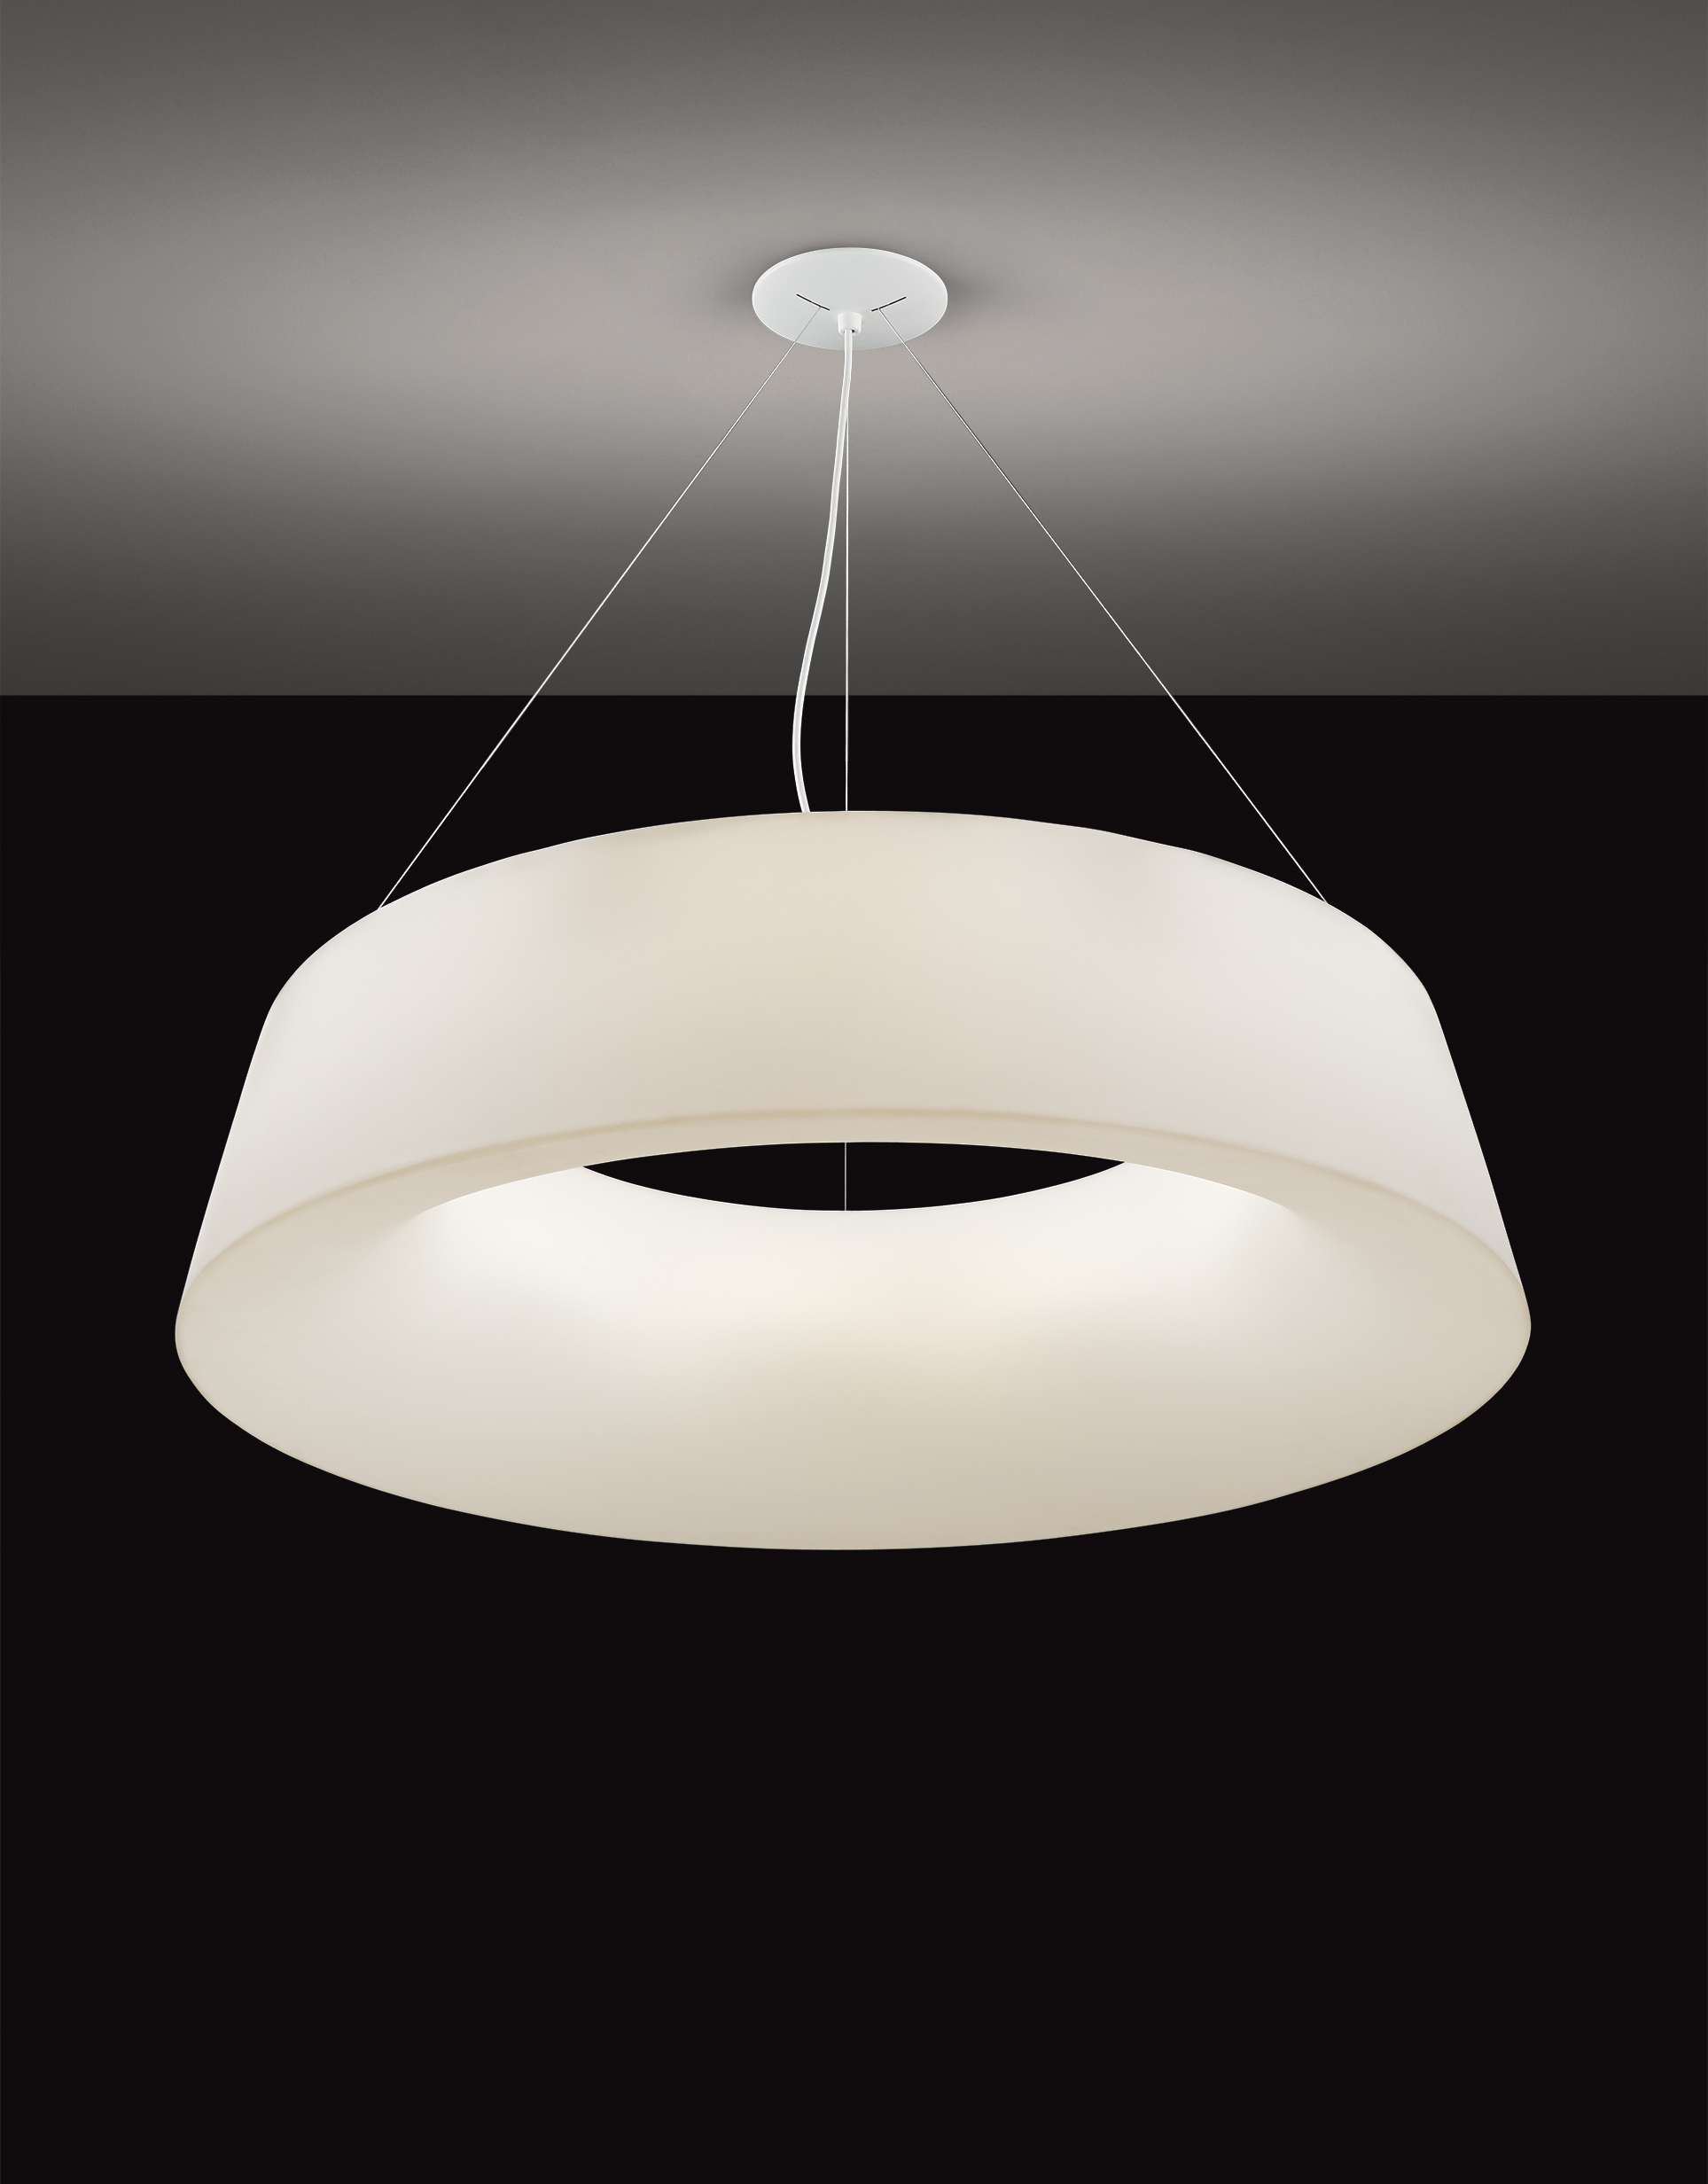 Loop pendant ocl architectural lighting arubaitofo Gallery